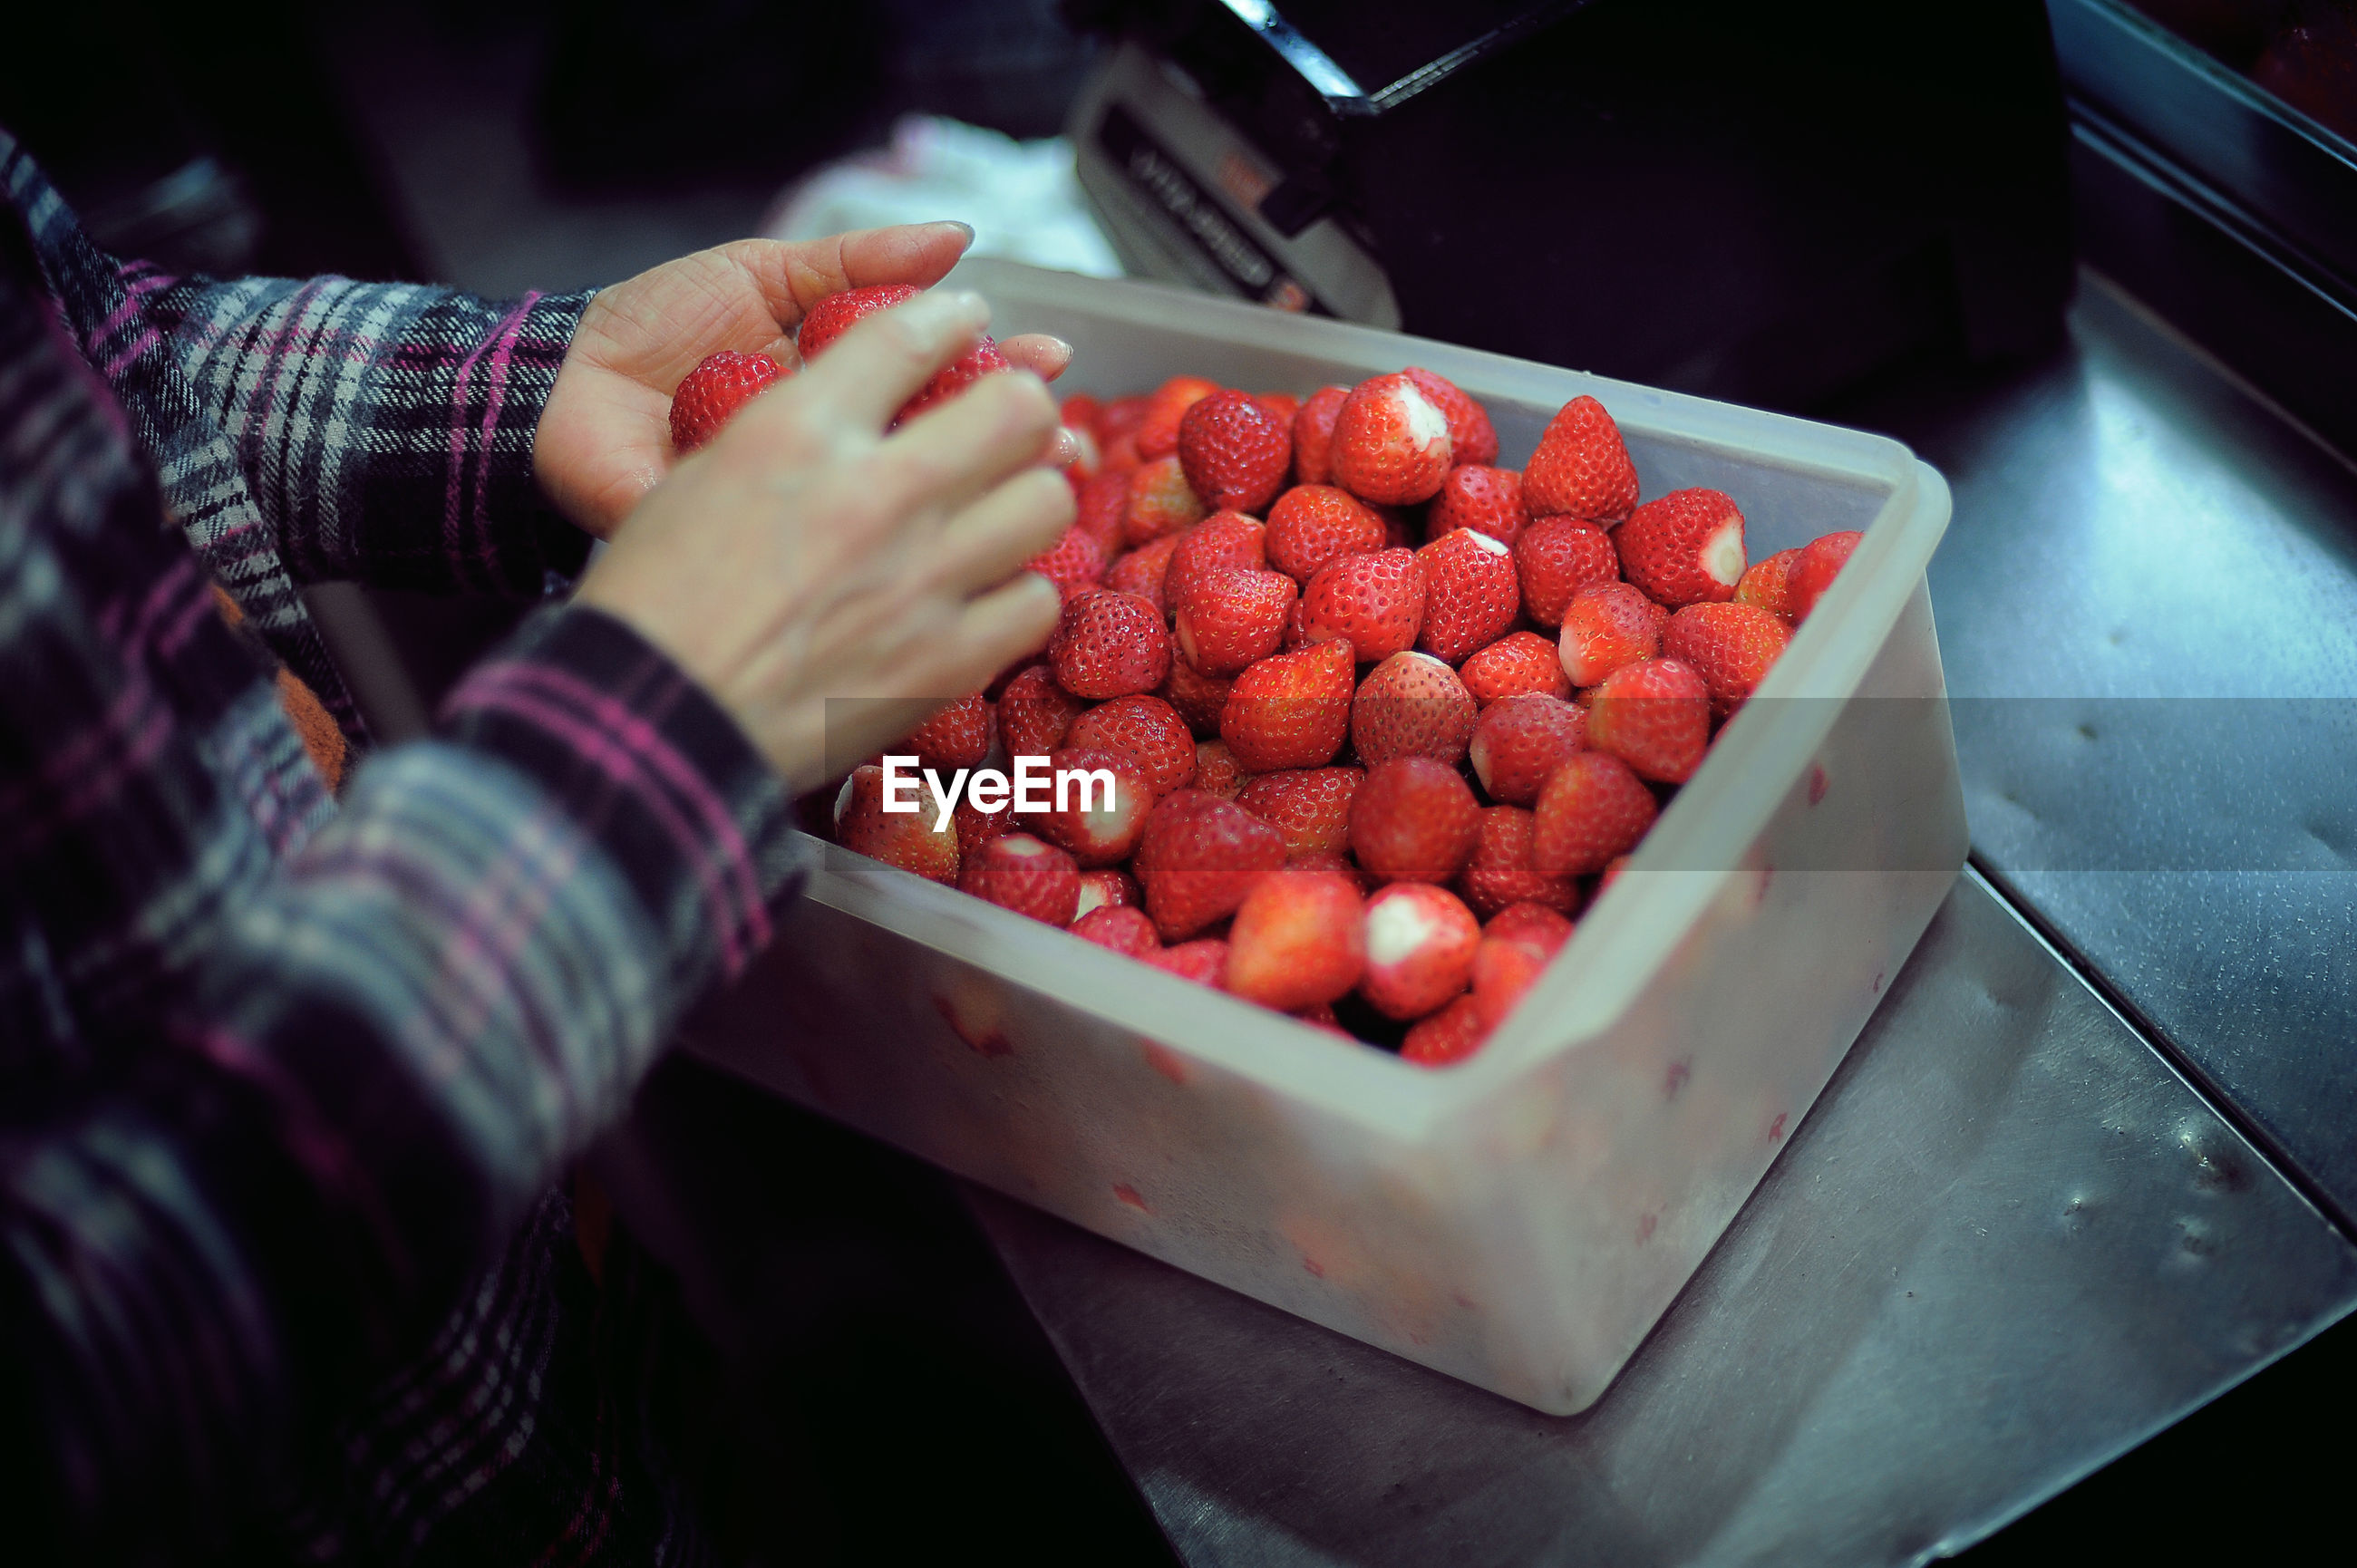 Midsection of man selling strawberries at market stall during night